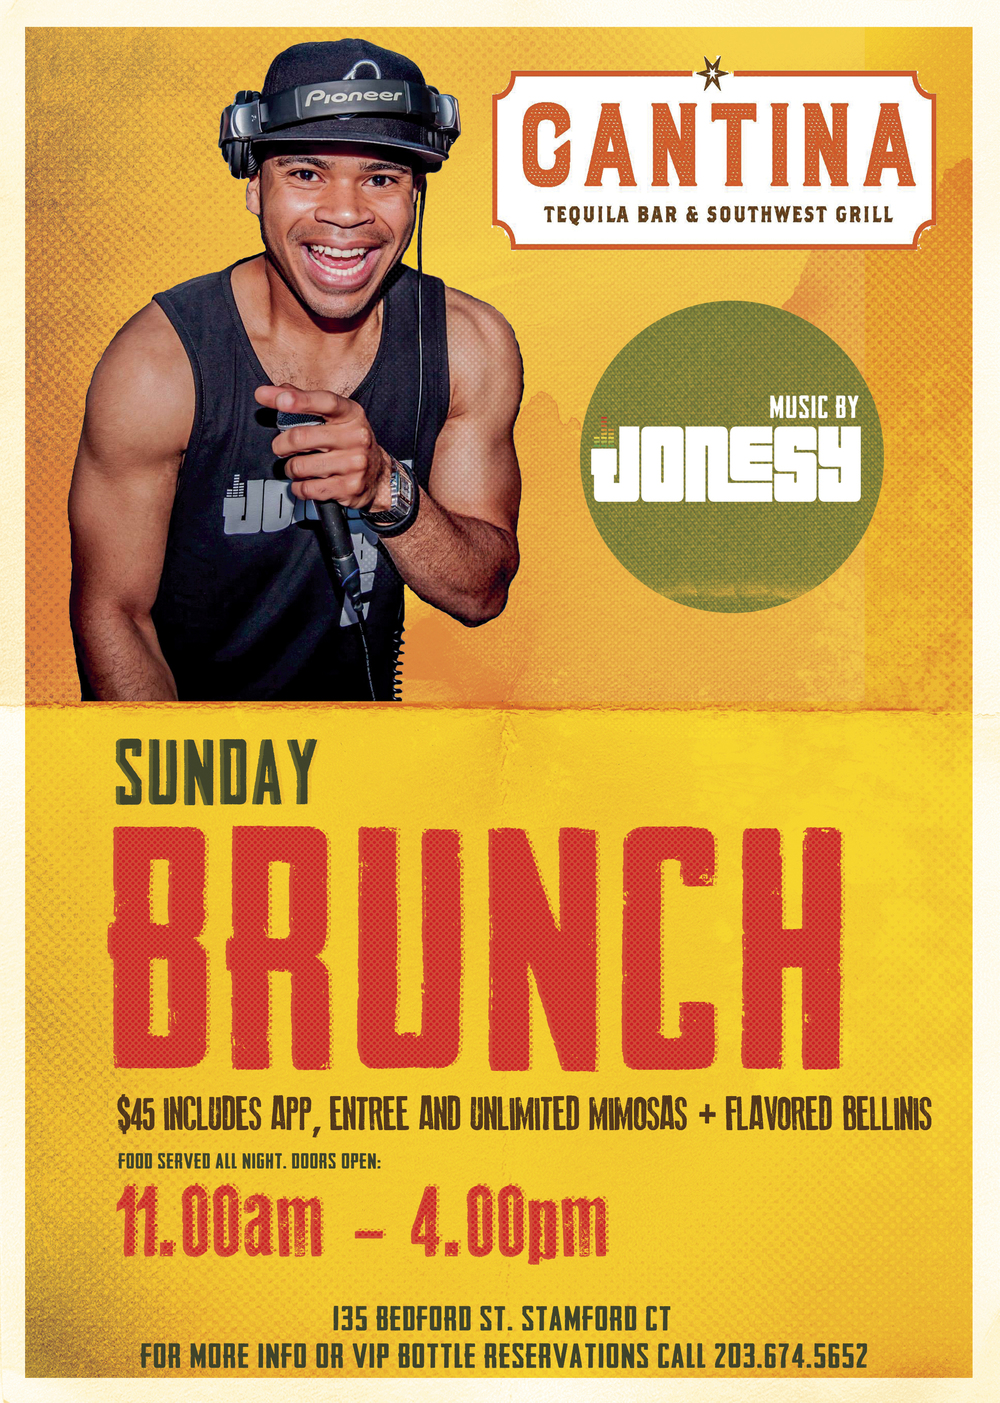 SUNDAY MAY 1ST, JOIN US AT CANTINA TEQUILA BAR & SOUTHWEST GRILL FOR SUNDAY BRUNCH WITH MUSIC BY YOURS TRULY!  DOORS OPEN AT 11AM, AND $15 GETS YOU AN UNLIMITED MIMOSAS AND/OR FLAVORED BELLINIS.  DELICIOUS FOOD SERVED ALL DAY LONG.  PARTY GOES UNTIL 4PM, MEET ME THERE!